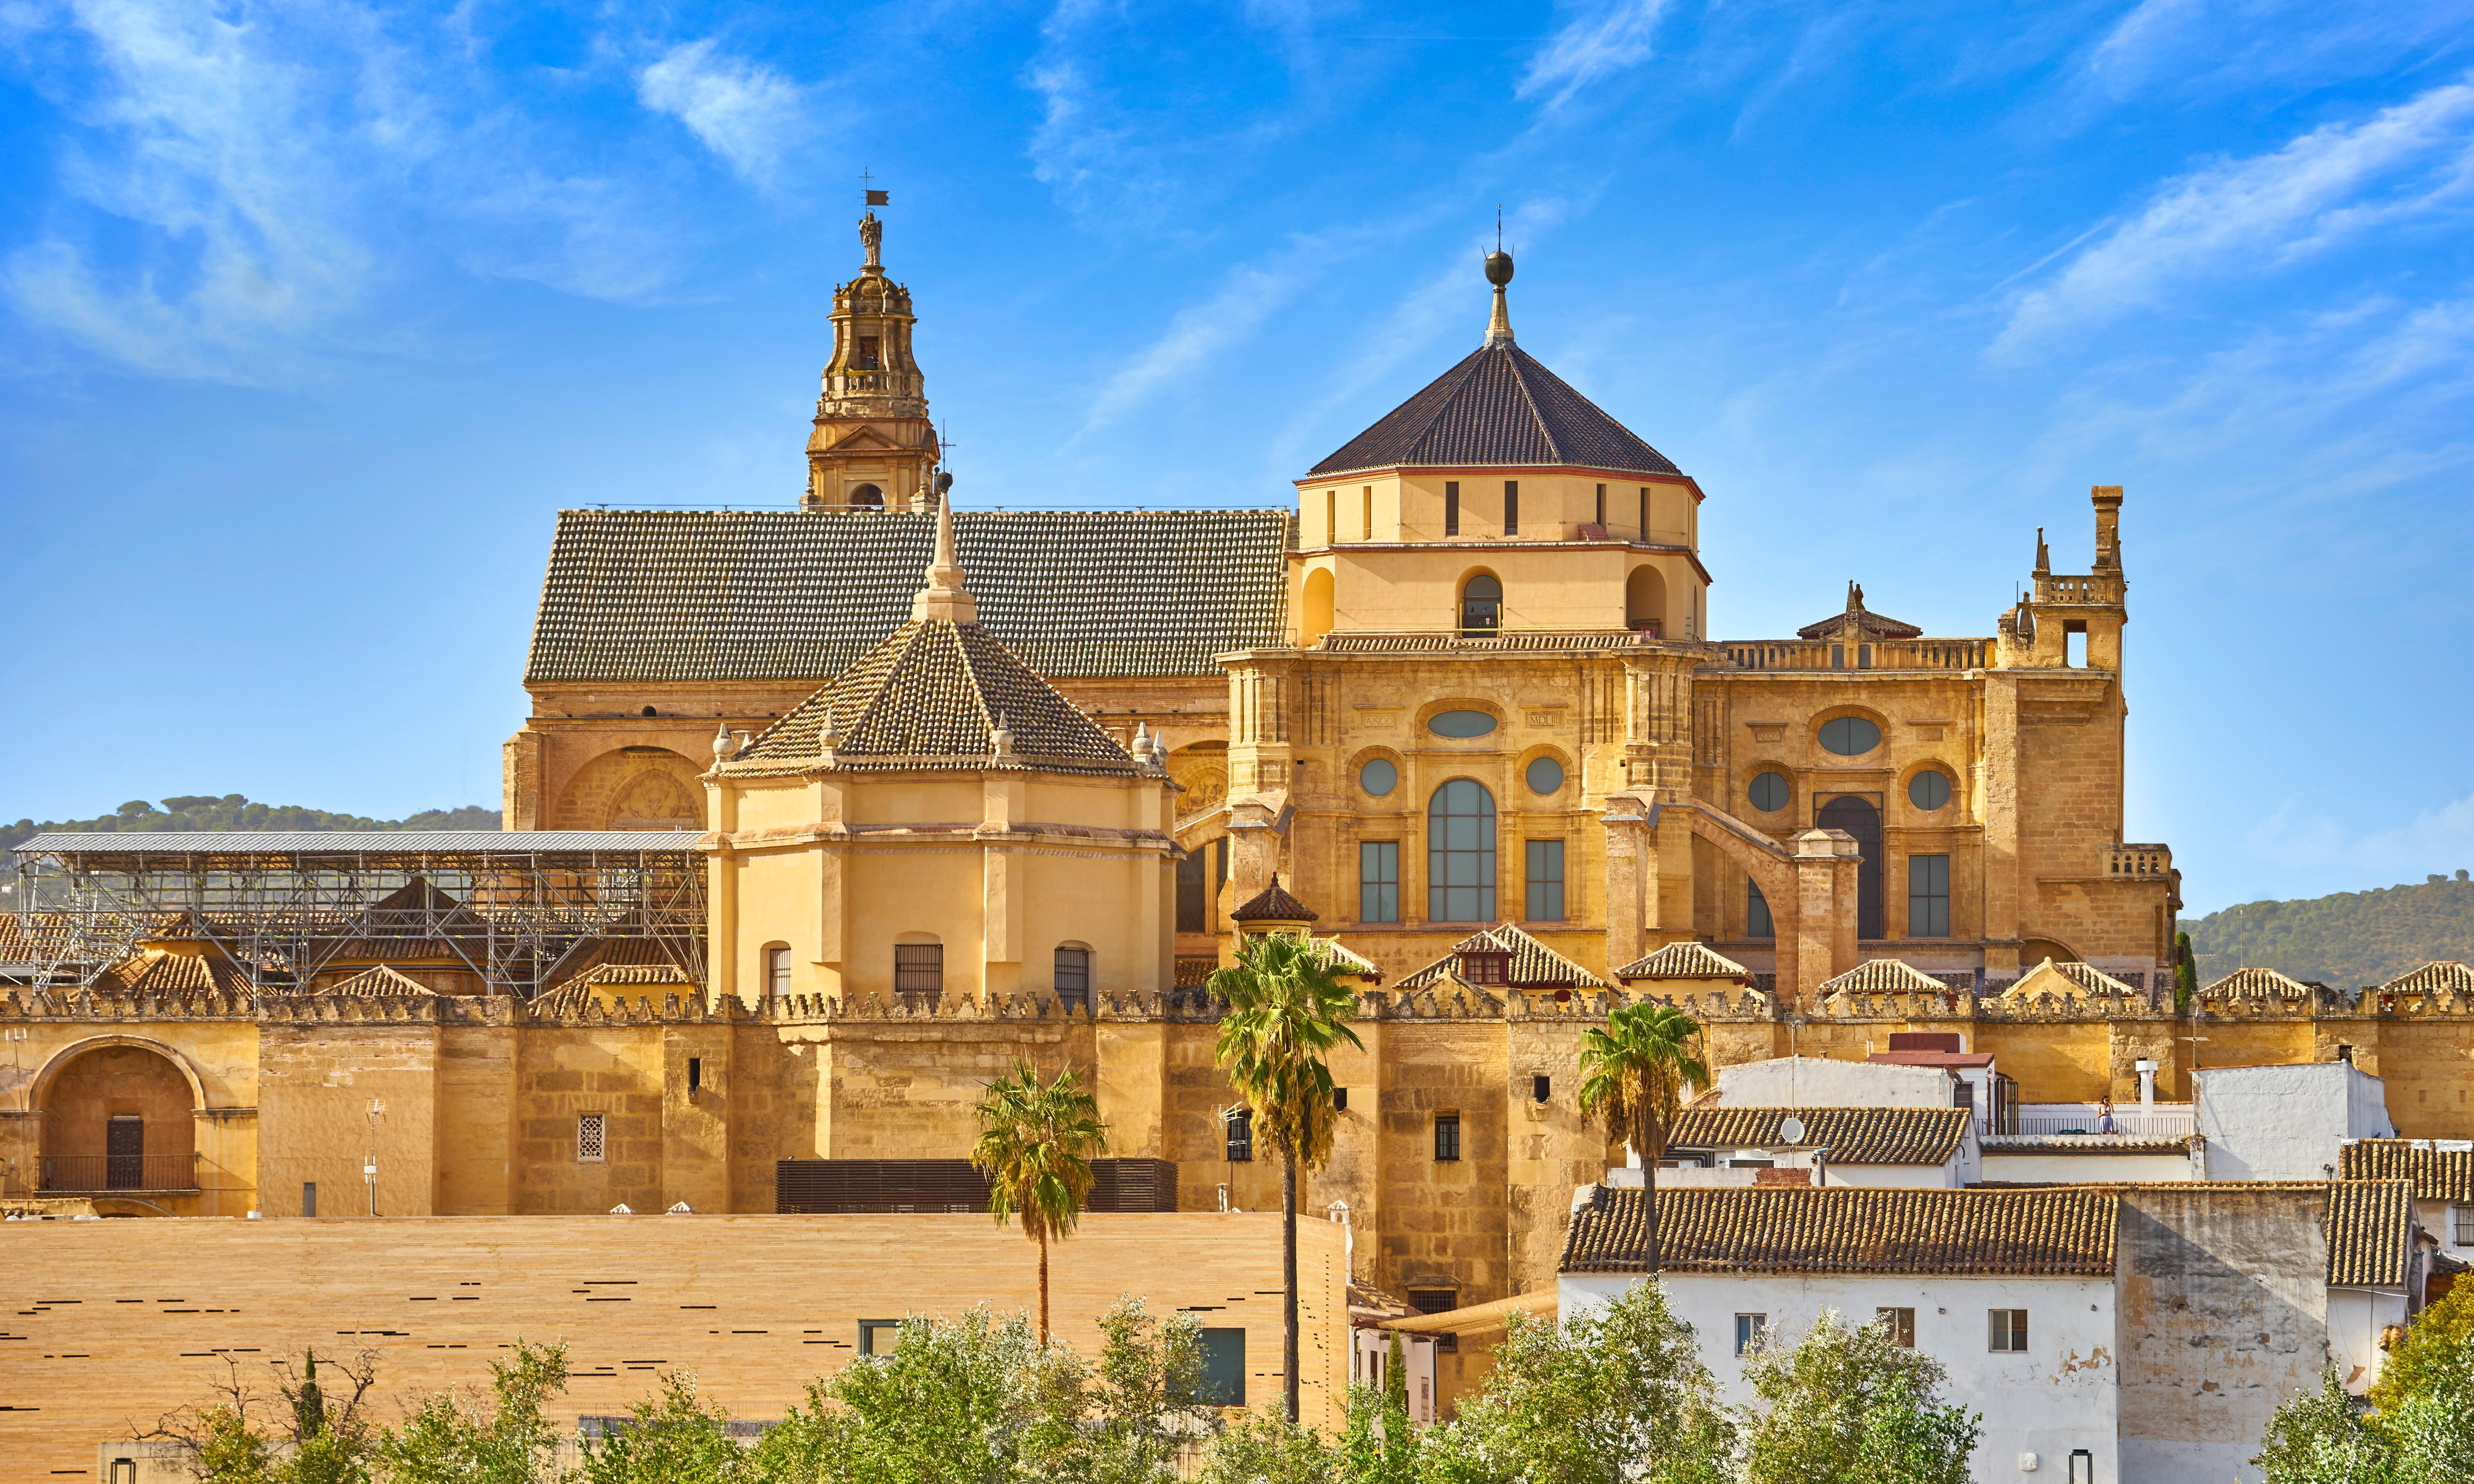 A local's guide to Córdoba, Spain: 10 top tips